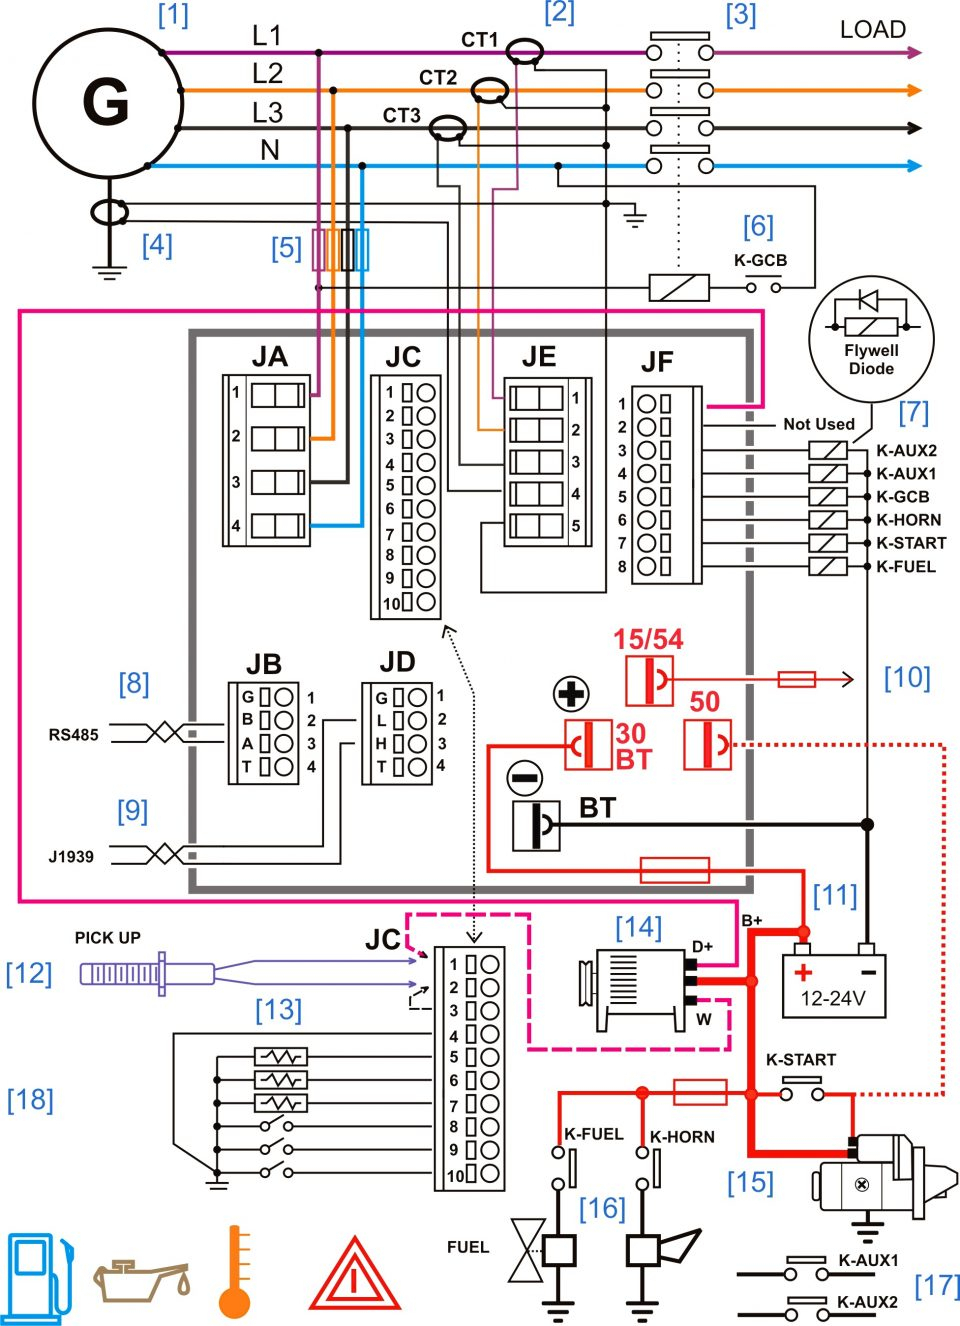 Diagram Cadillac Alarm Wiring Diagram Full Version Hd Quality Wiring Diagram 2phasediagram Osterianonnagina It